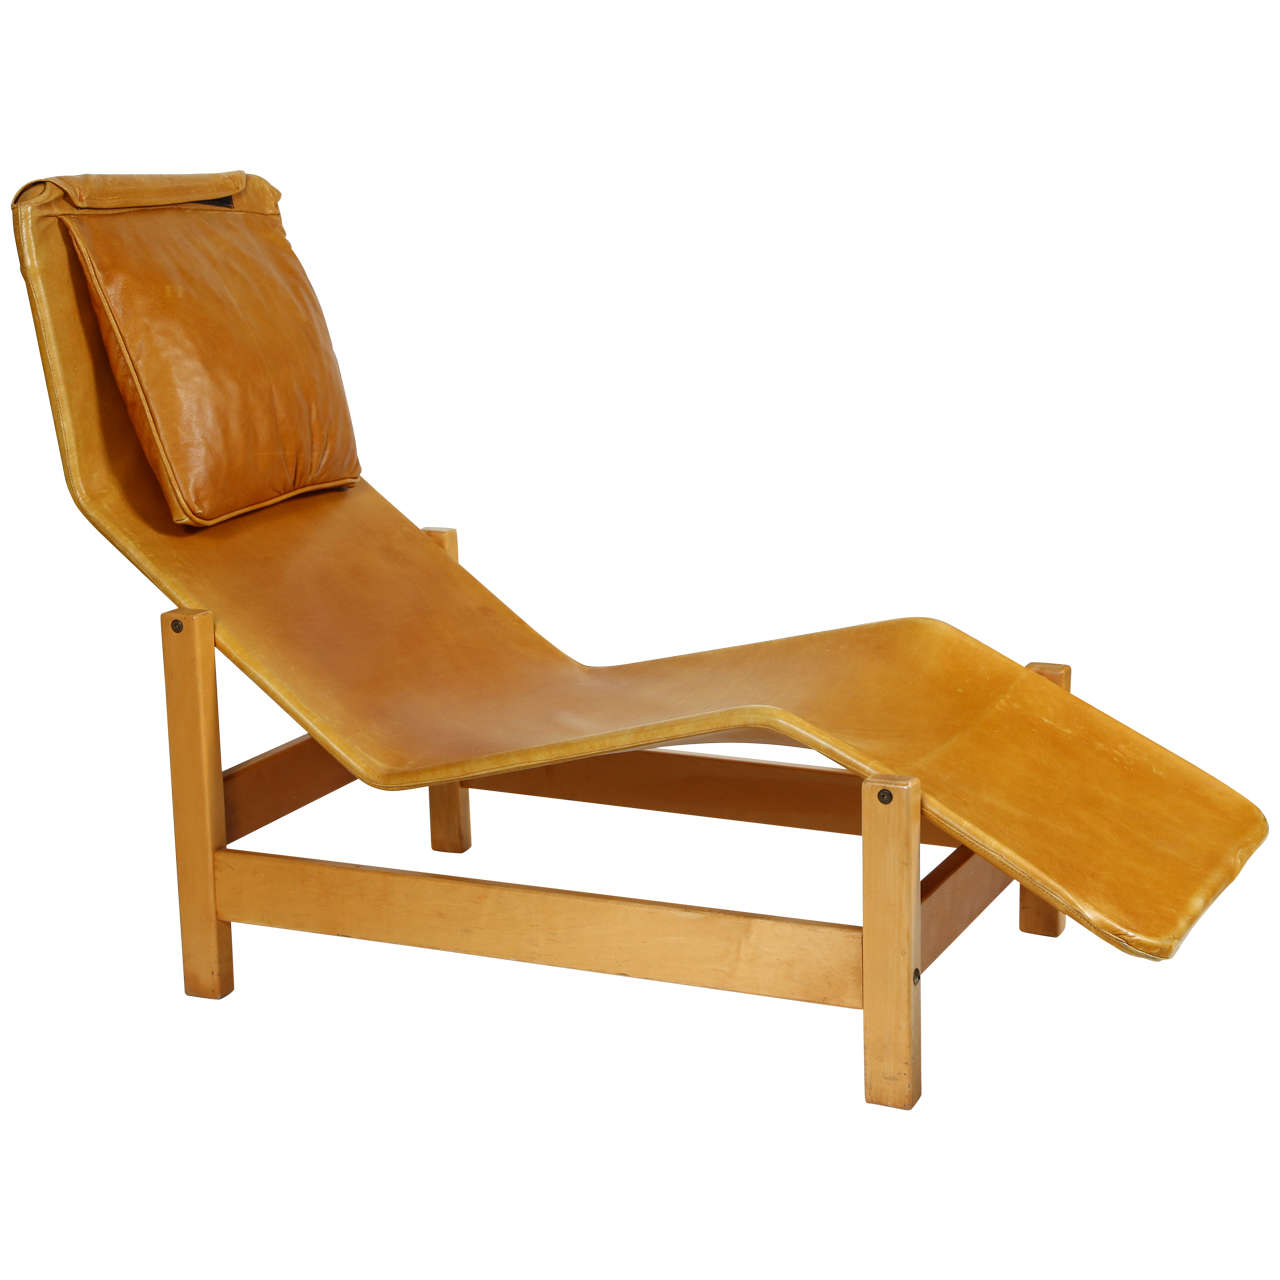 Swedish chaise lounge at 1stdibs for Best price chaise lounge